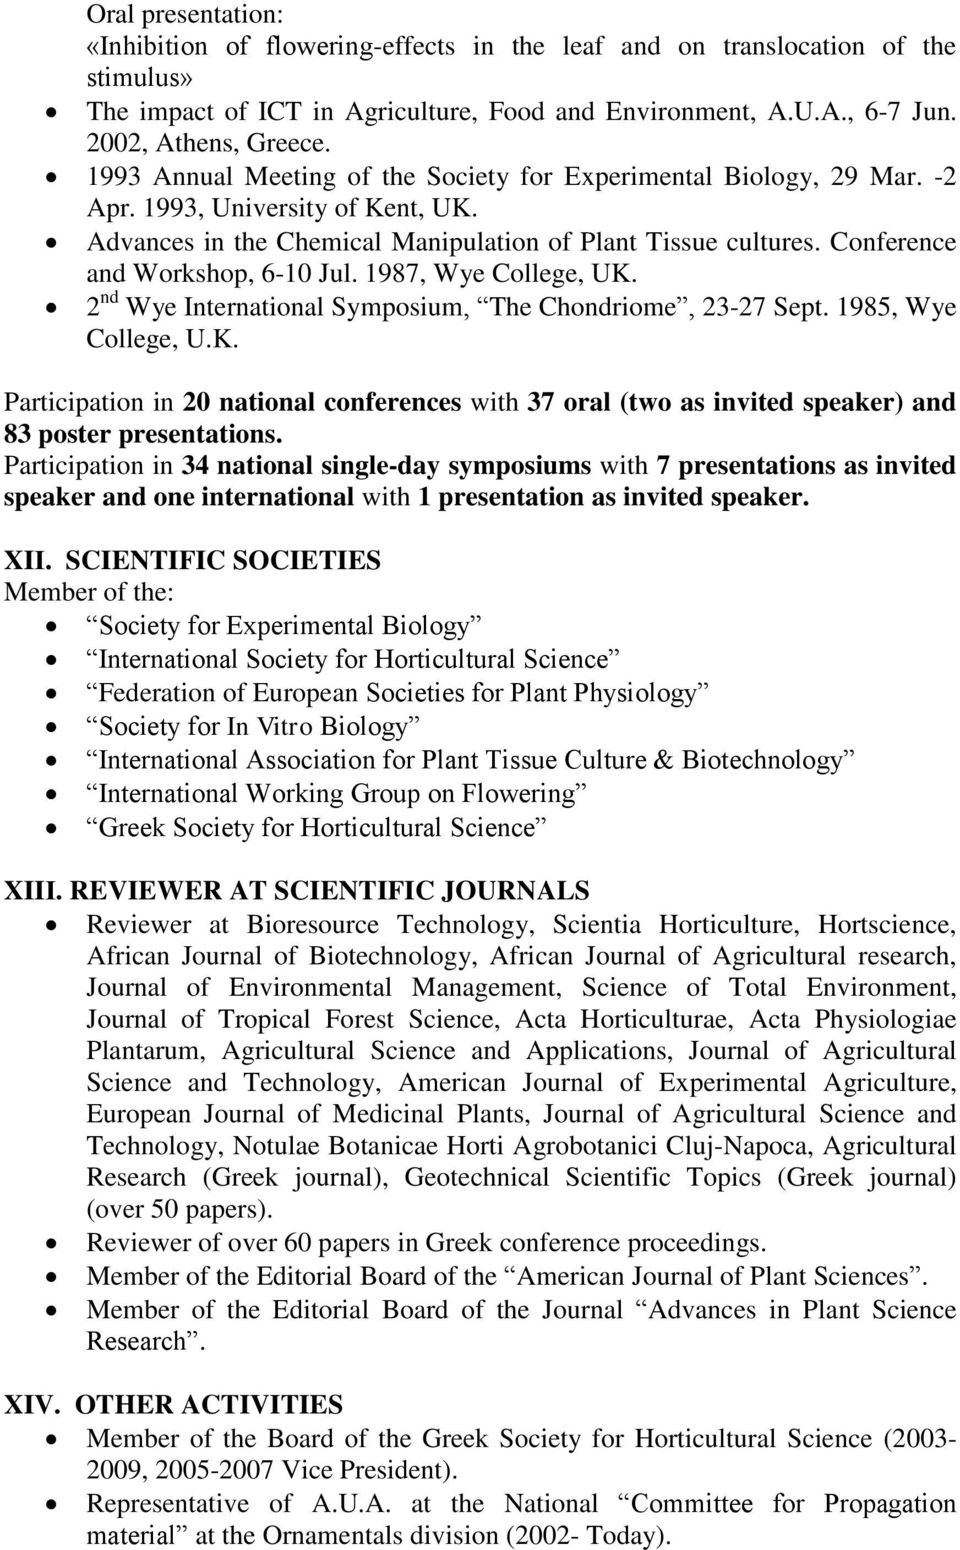 Conference and Workshop, 6-10 Jul. 1987, Wye College, UK. 2 nd Wye International Symposium, The Chondriome, 23-27 Sept. 1985, Wye College, U.K. Participation in 20 national conferences with 37 oral (two as invited speaker) and 83 poster presentations.